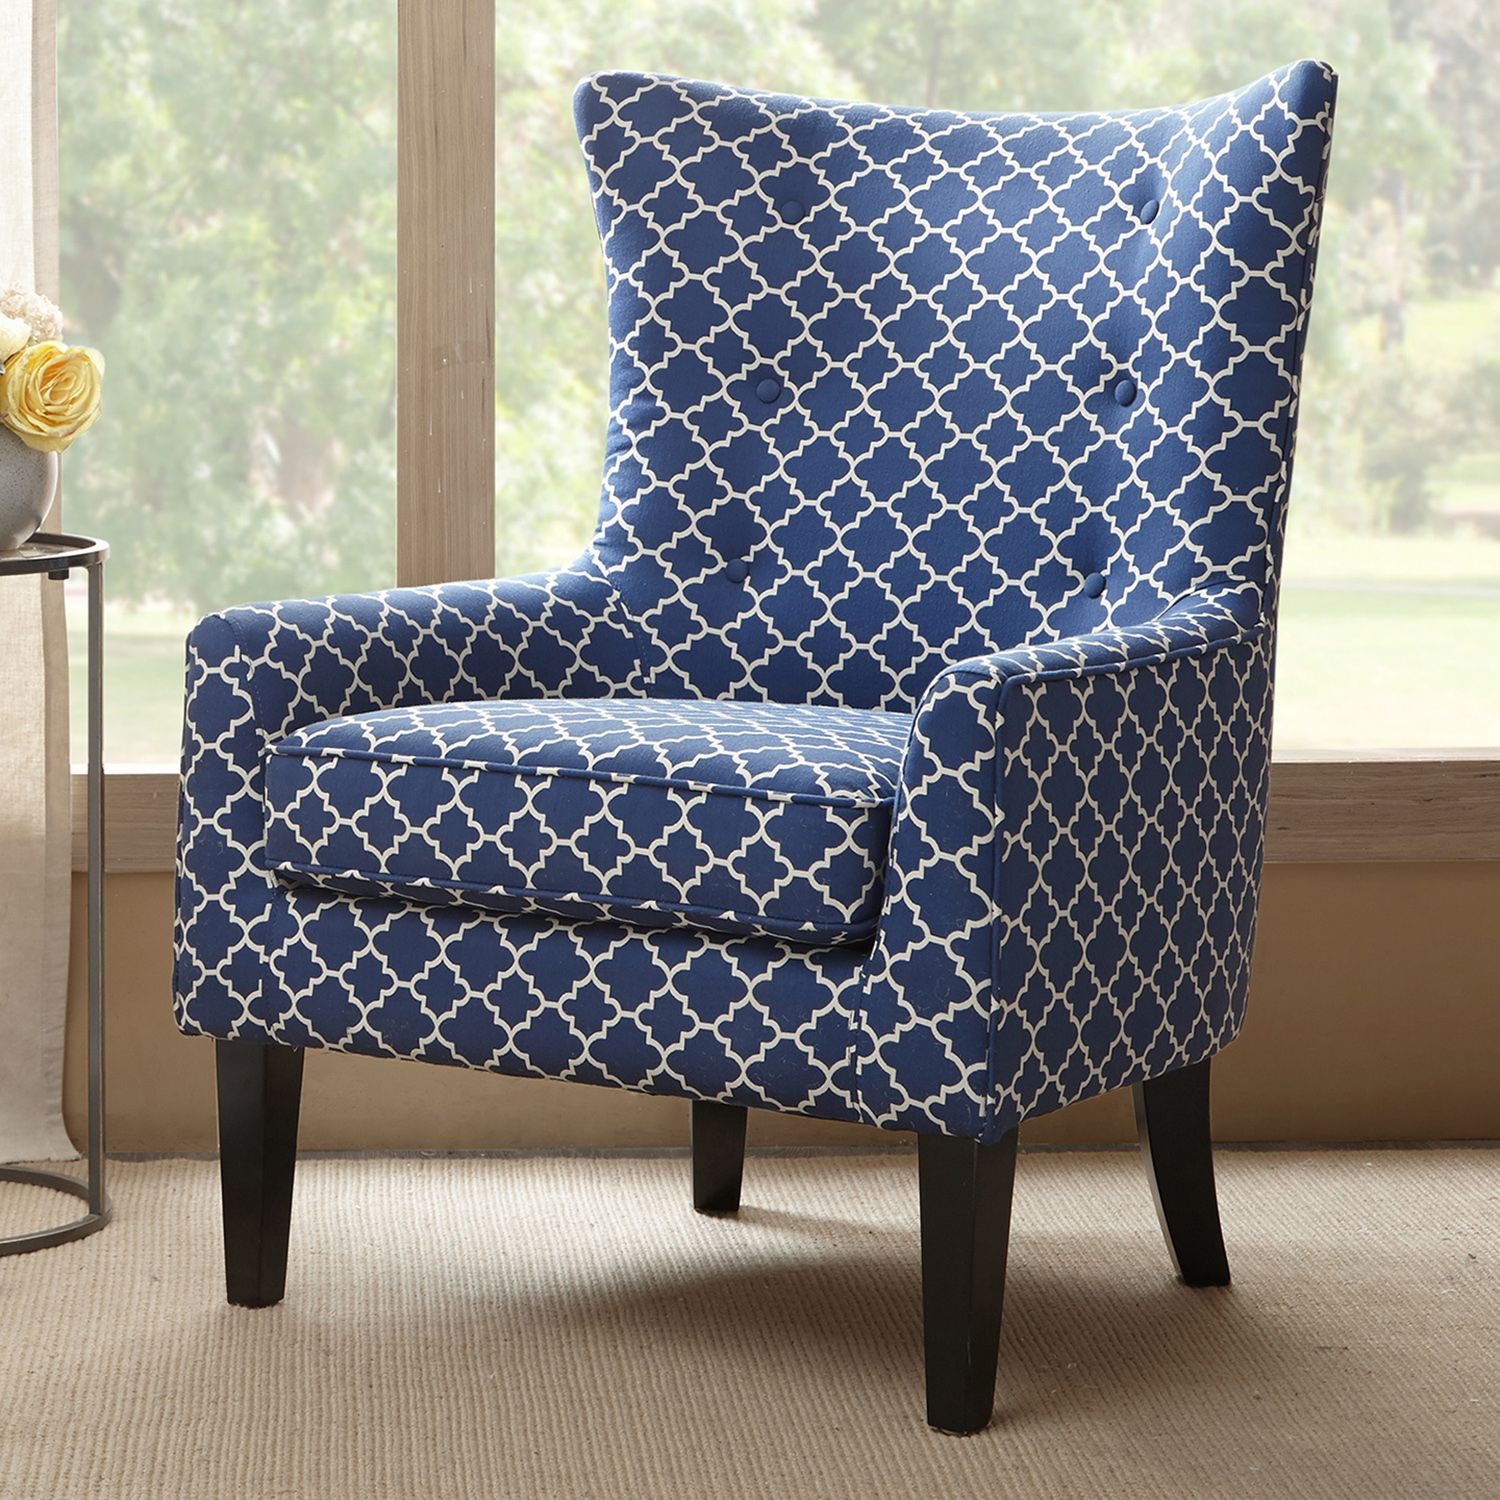 Superieur Madison Park Carissa Accent Chair. Blue Yellow Gray Pattern Navy Pattern